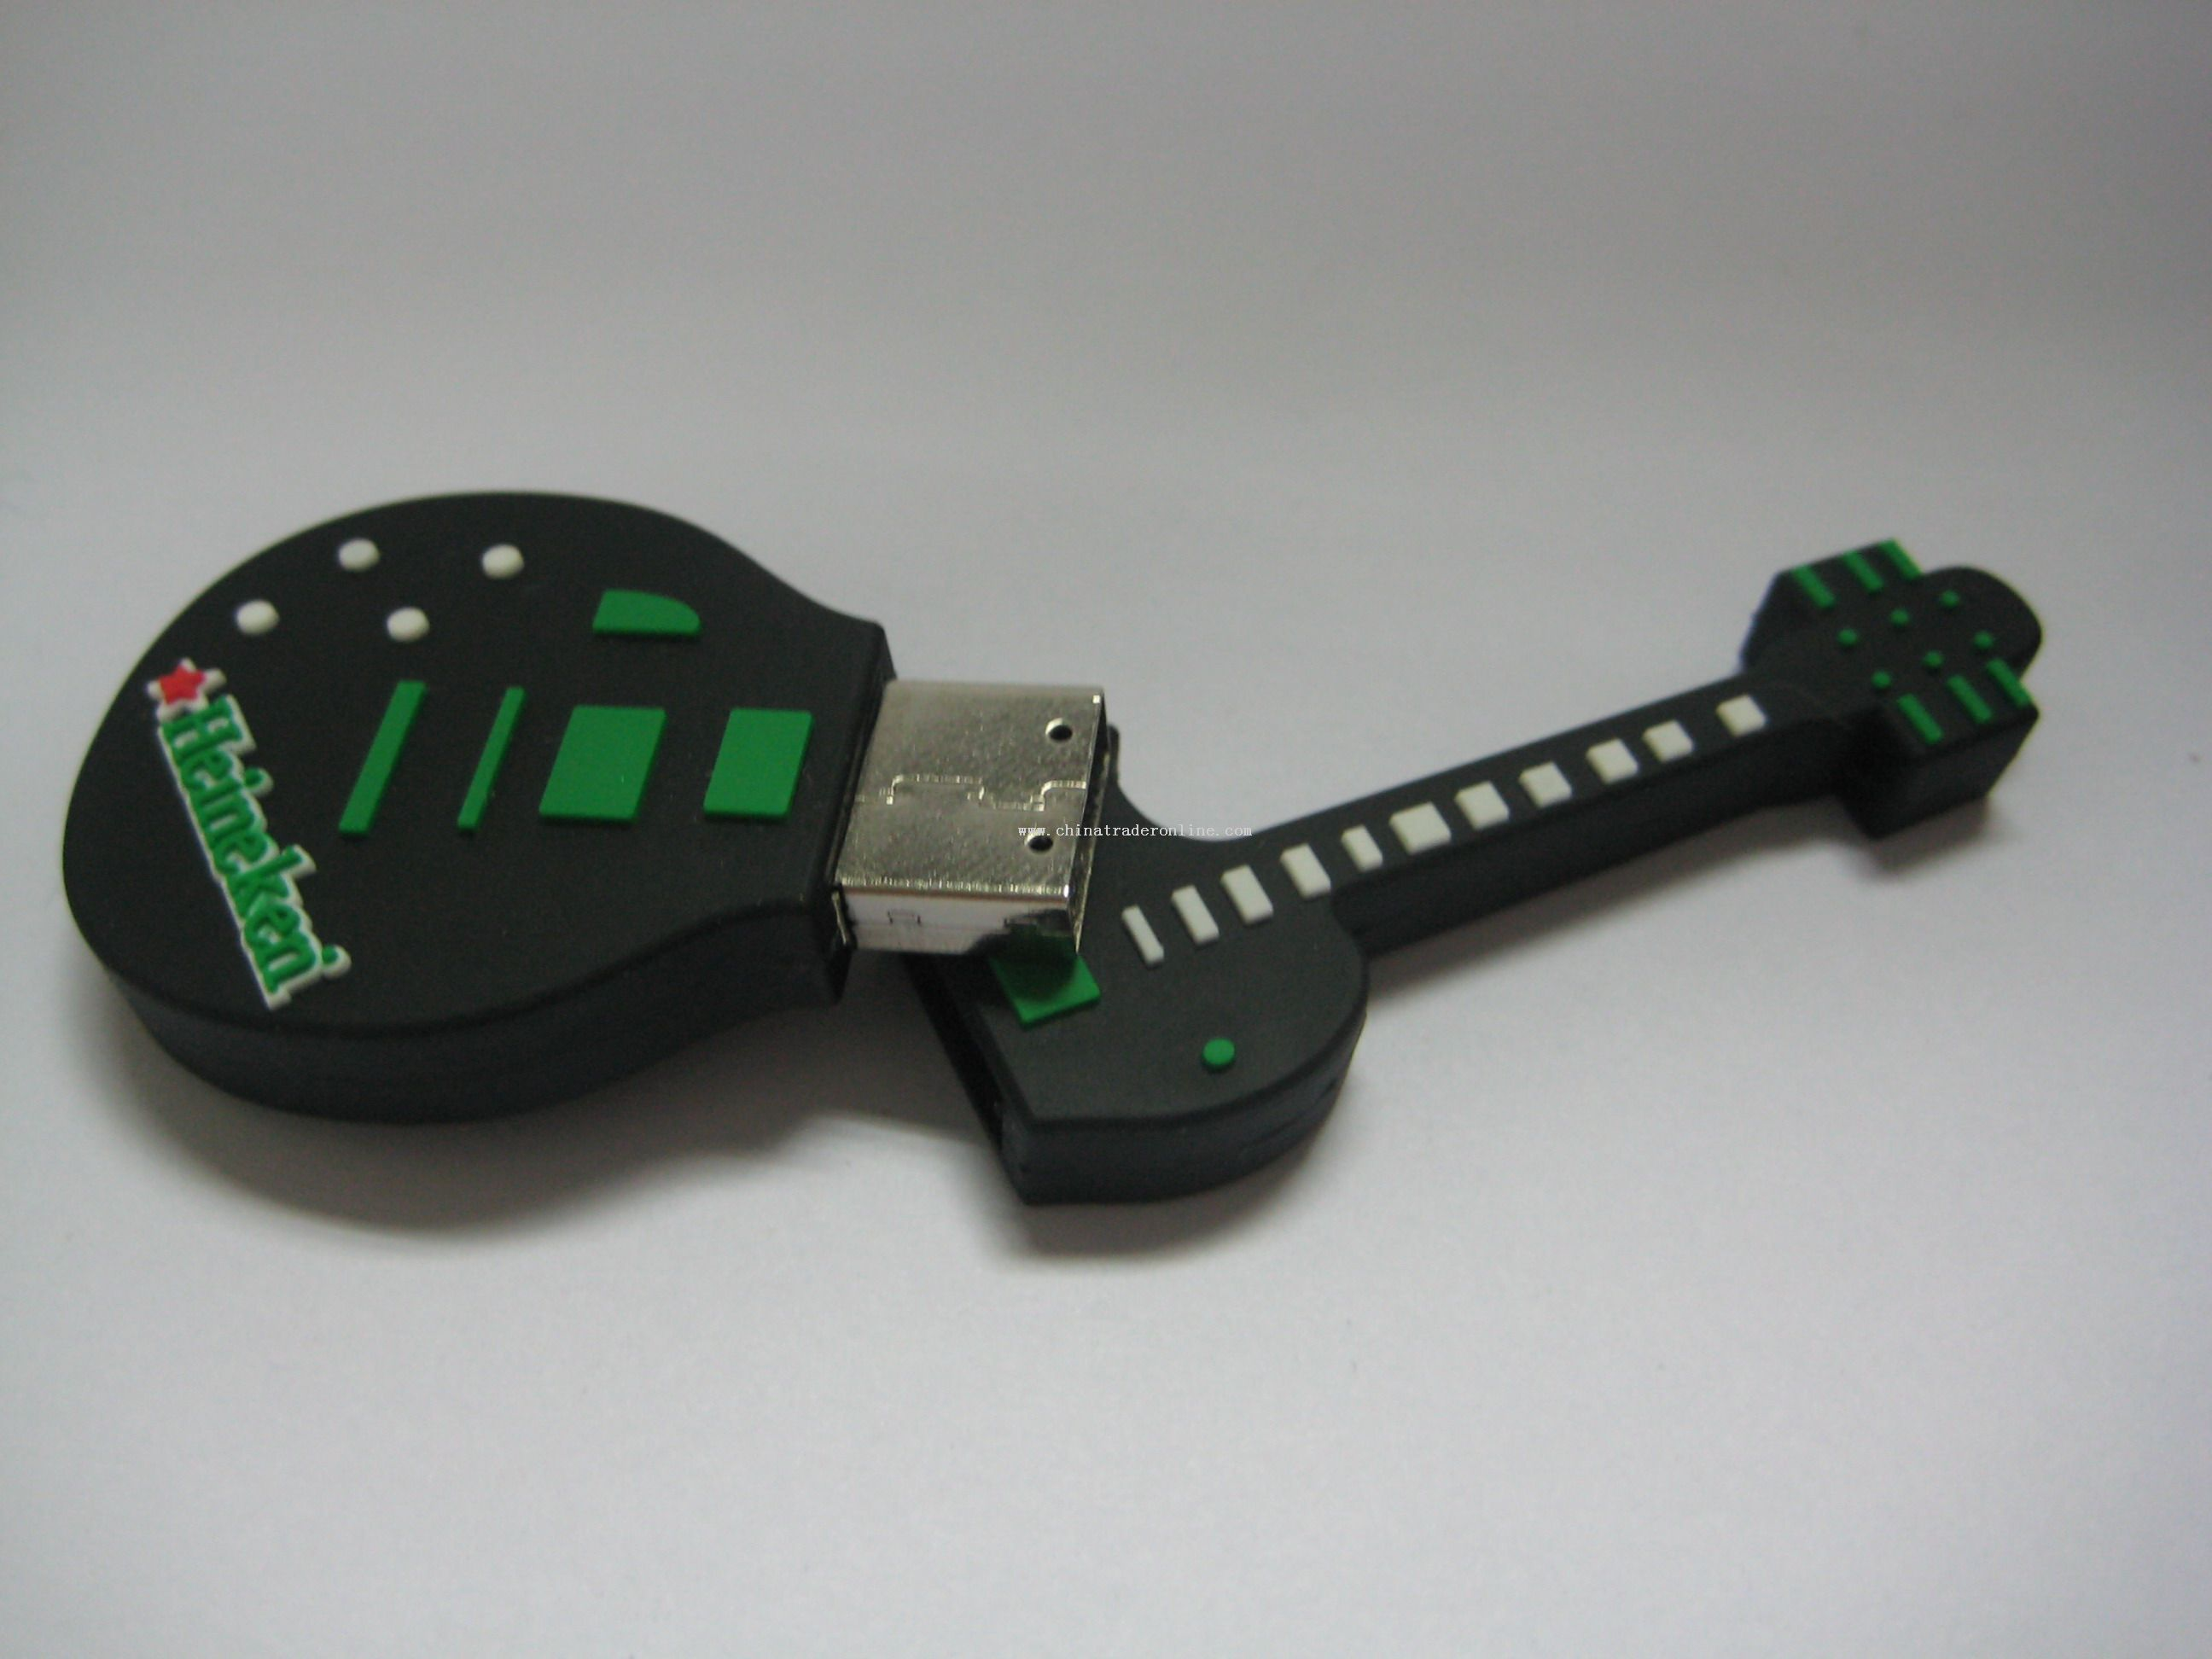 violin shape usb